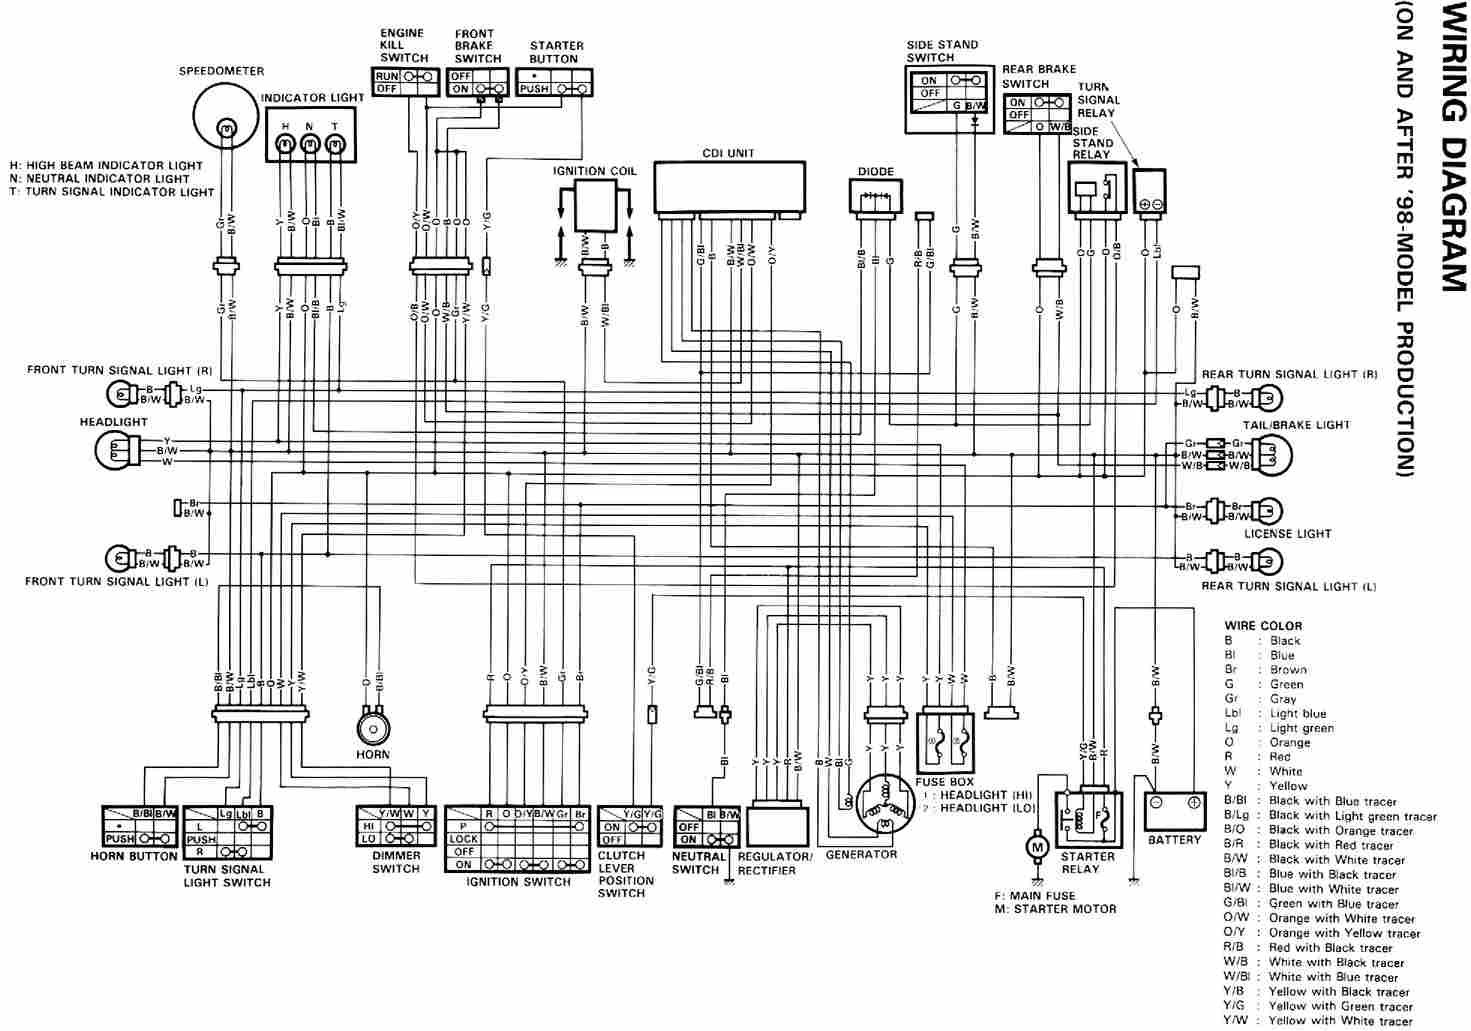 2007 yamaha v star 650 wiring diagram